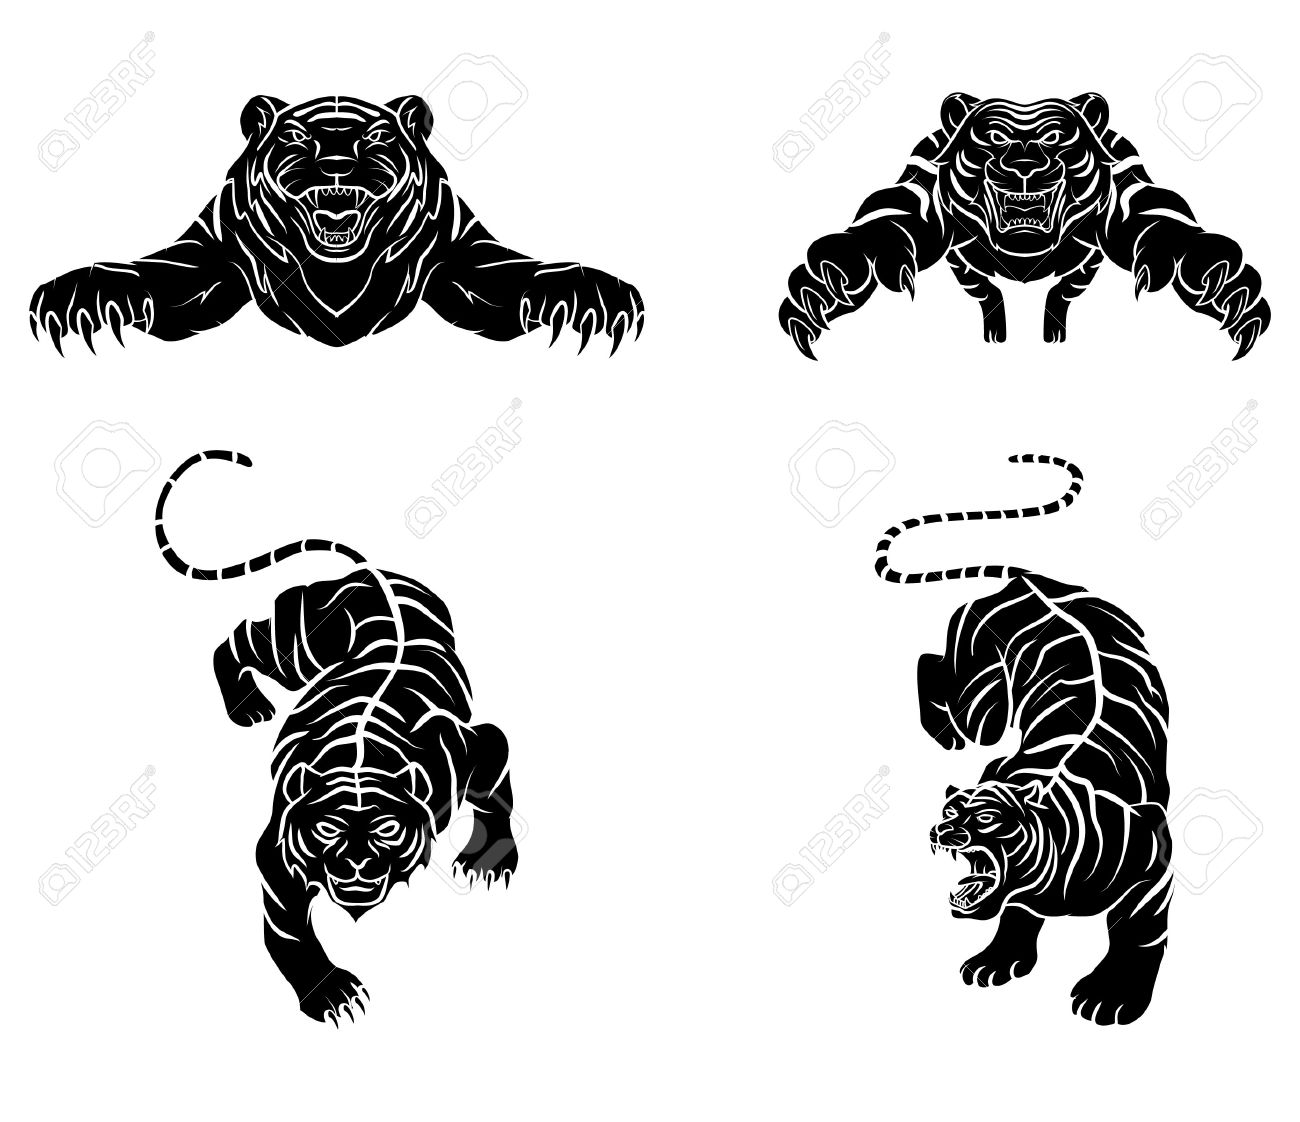 Tattoo symbol of tiger royalty free cliparts vectors and stock tattoo symbol of tiger stock vector 36675006 biocorpaavc